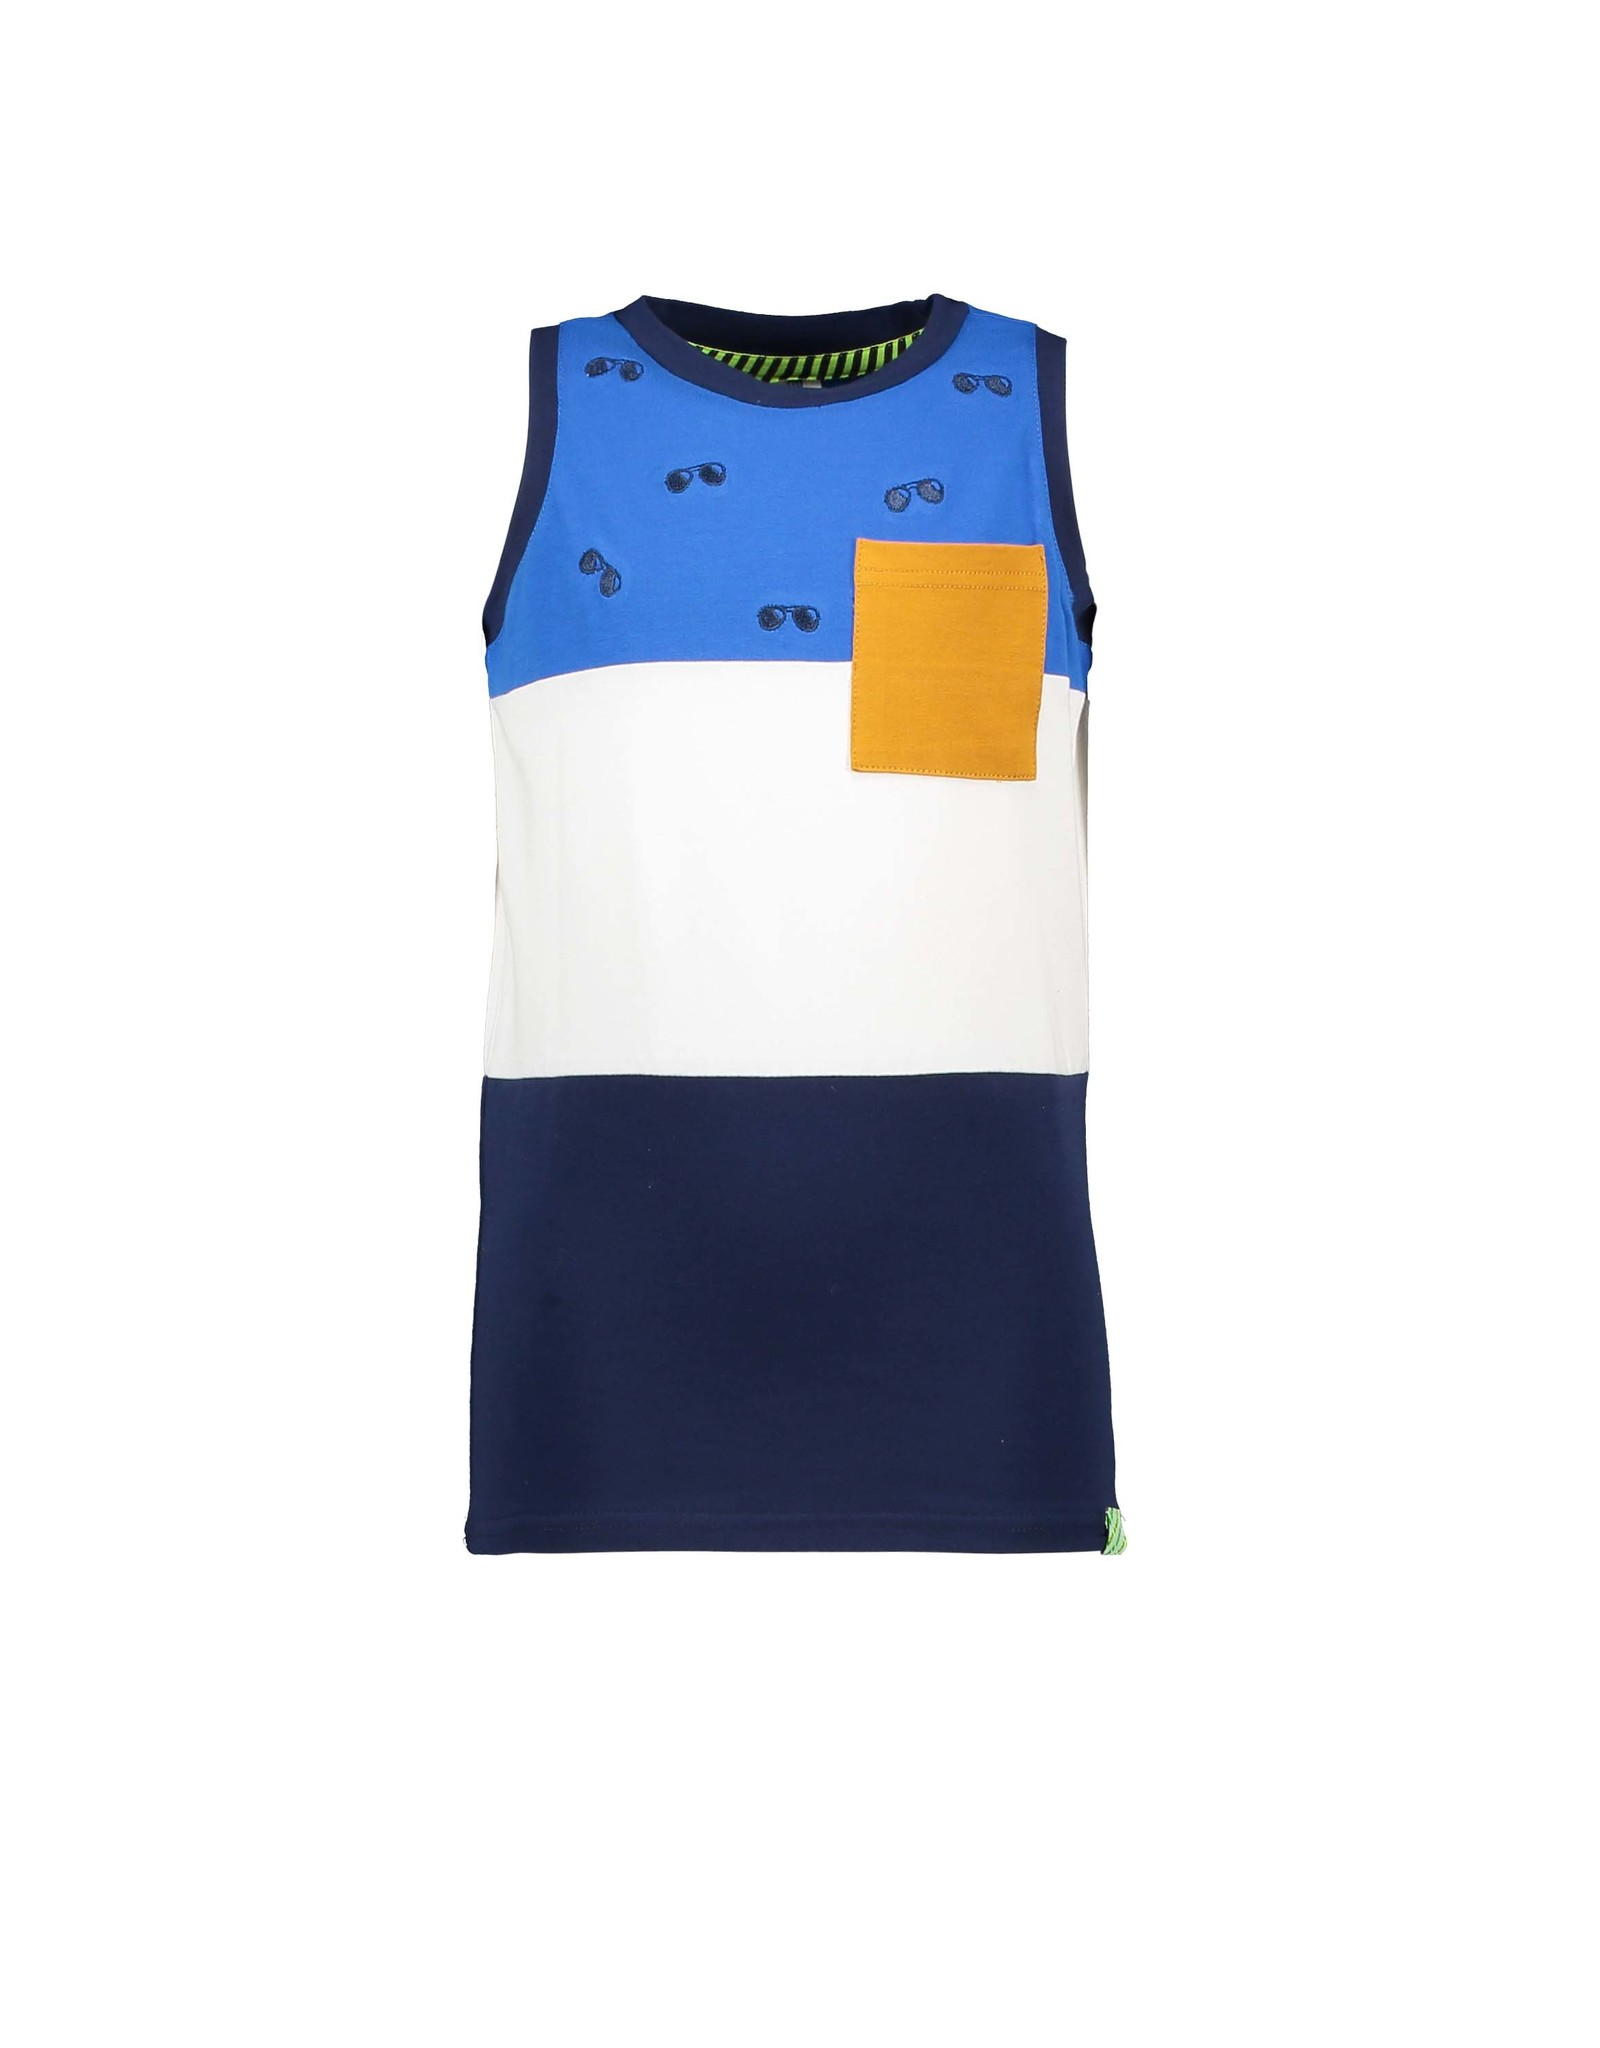 B-Nosy Boys tanktop with 3 parts, space blue